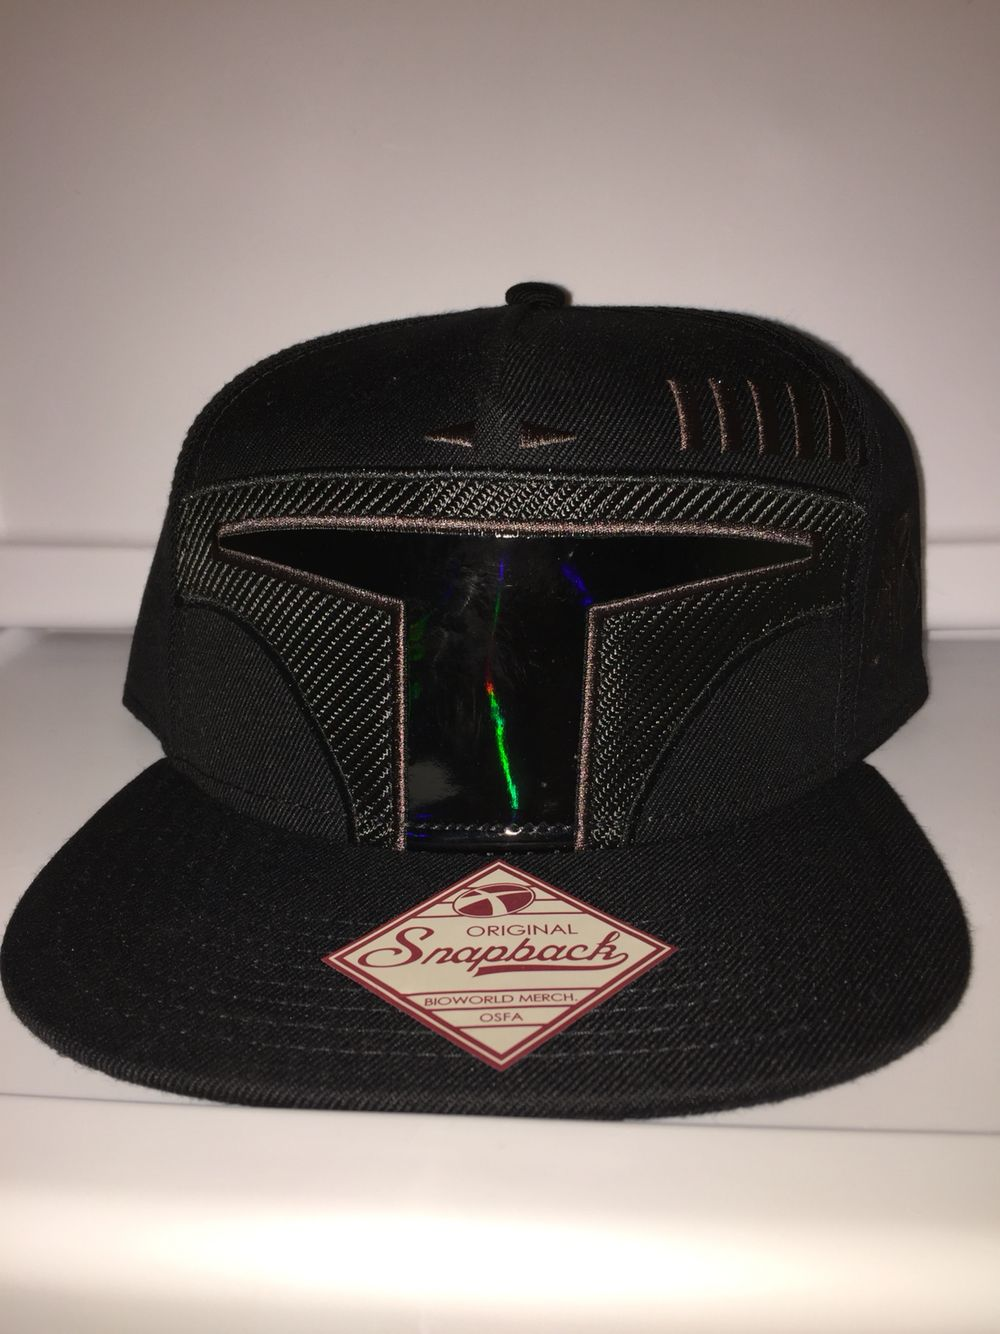 3a603e7945c Bioworld SnapBack Star Wars warriors of Mandalore boba fett helmet all  black with brown stitching and boba fett symbol on the side